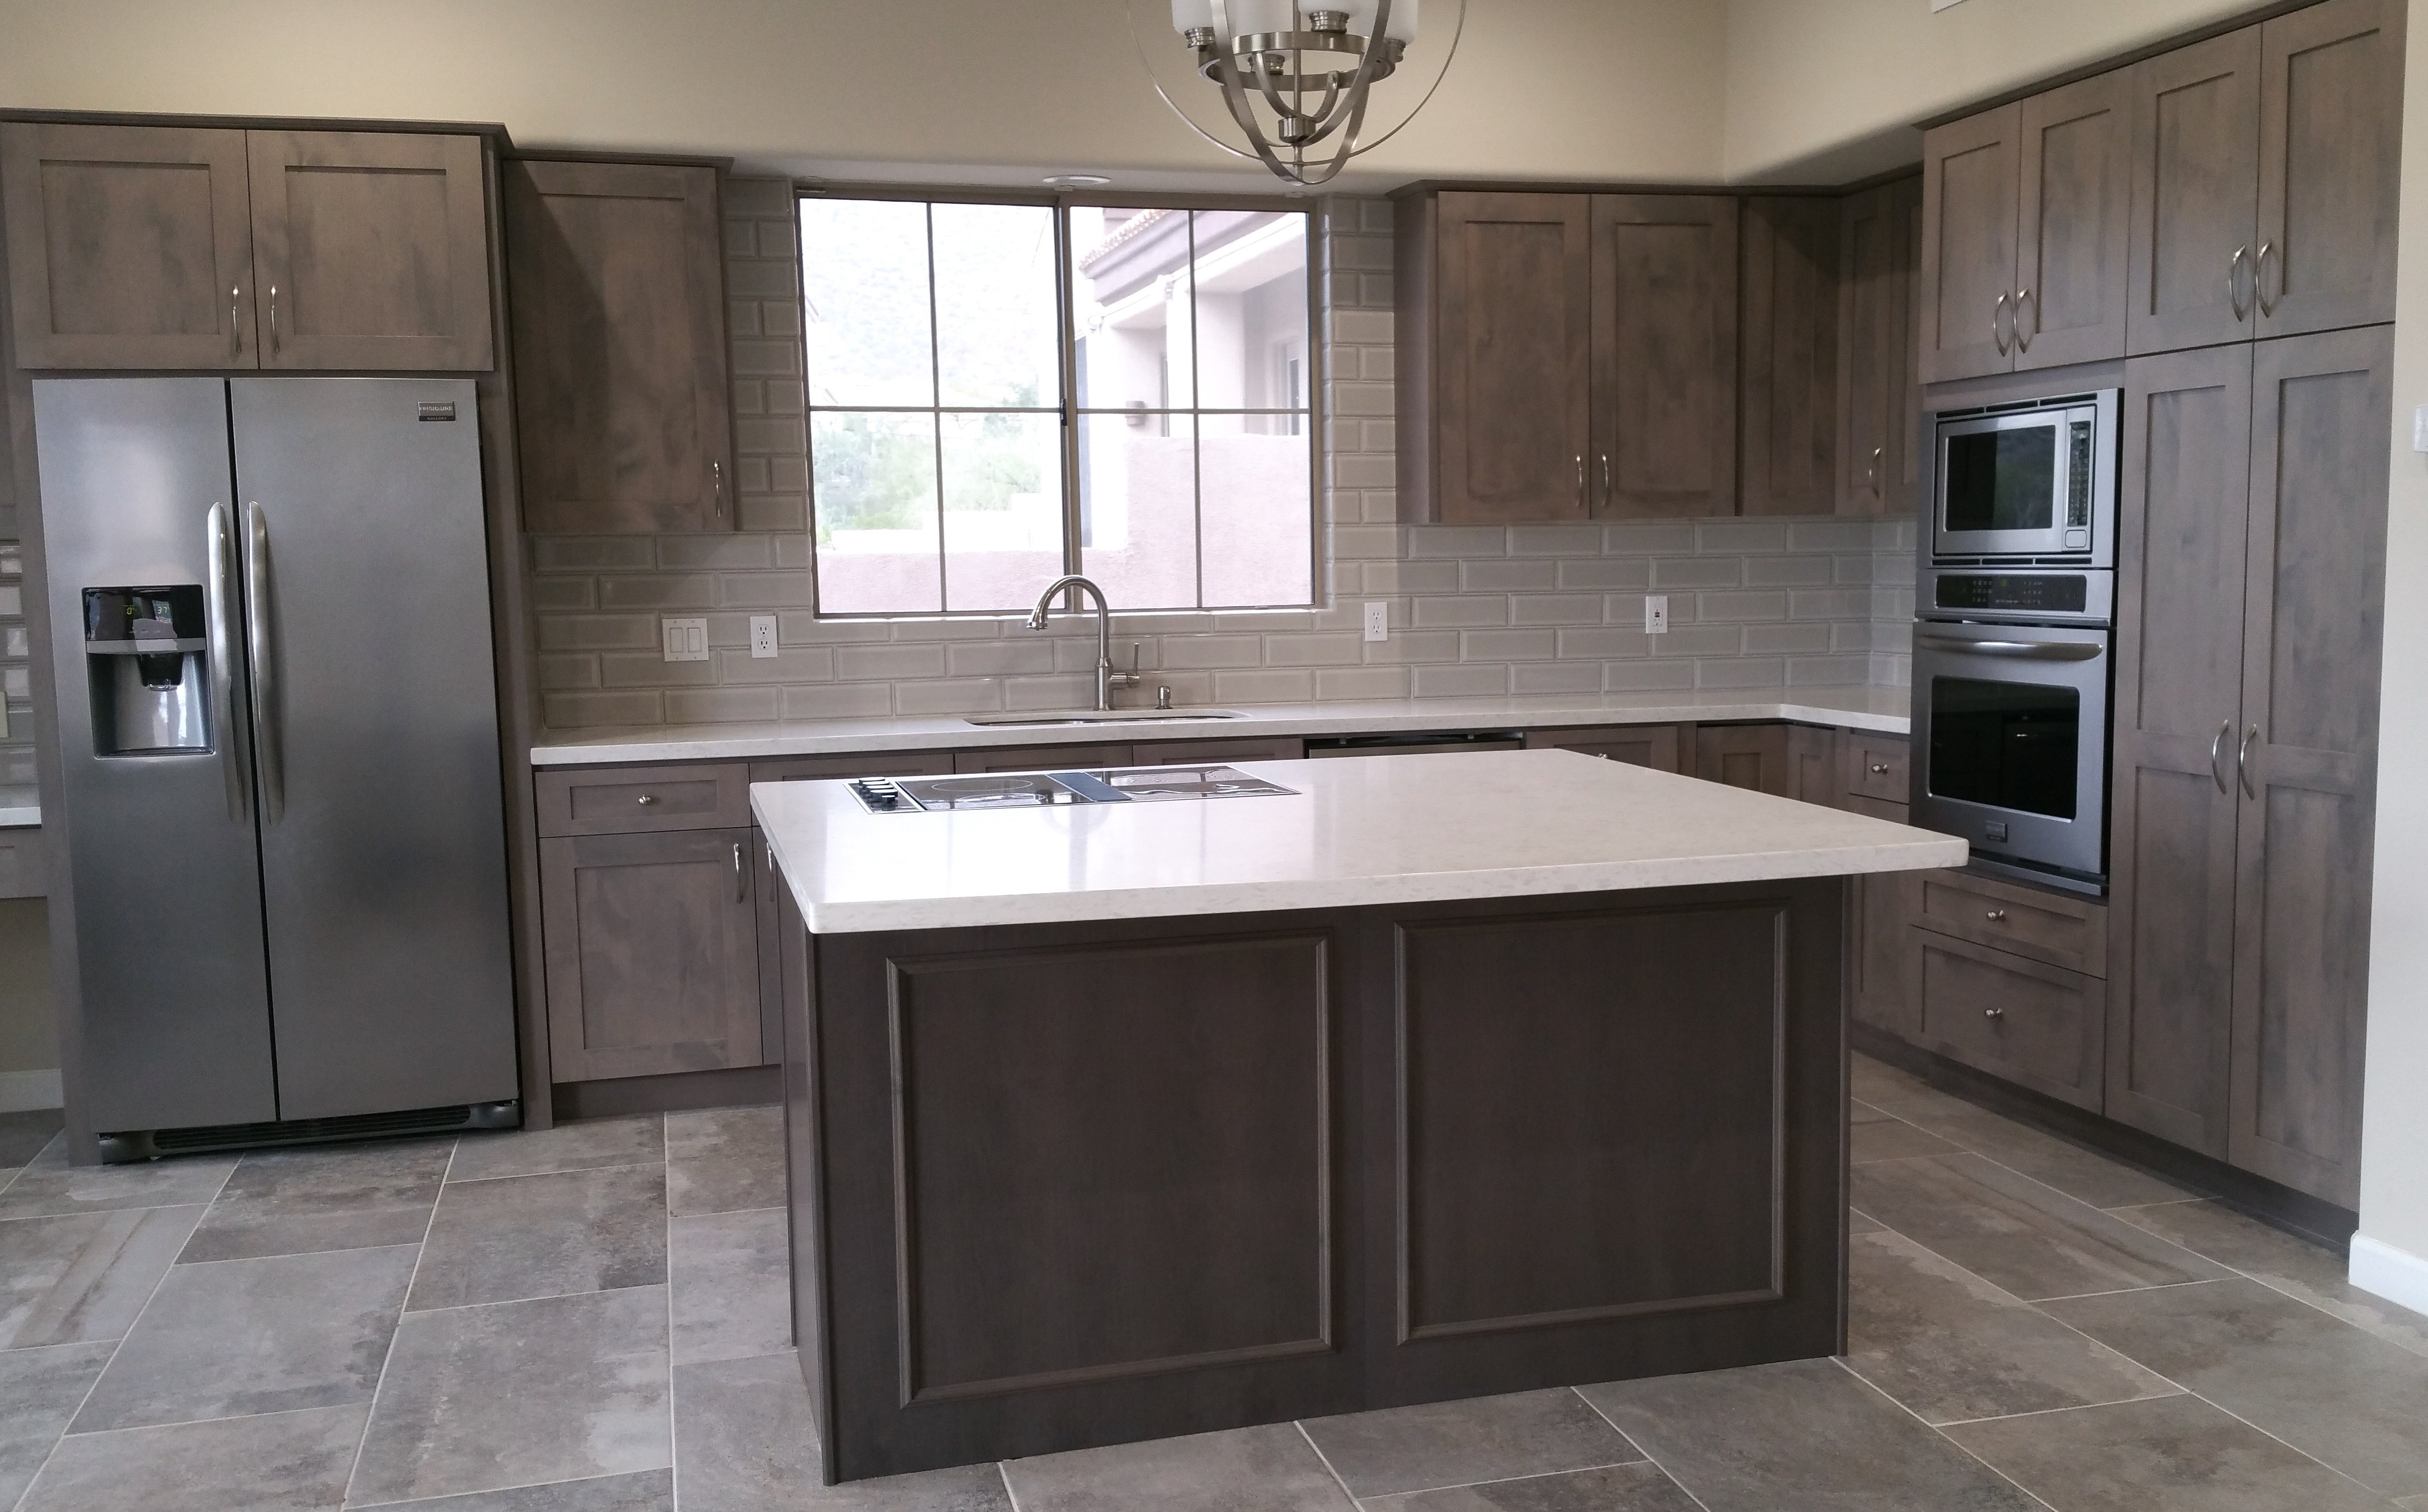 Images Of Kitchen Cabinet Better Than New Kitchens Kitchen Cabinet Refacing